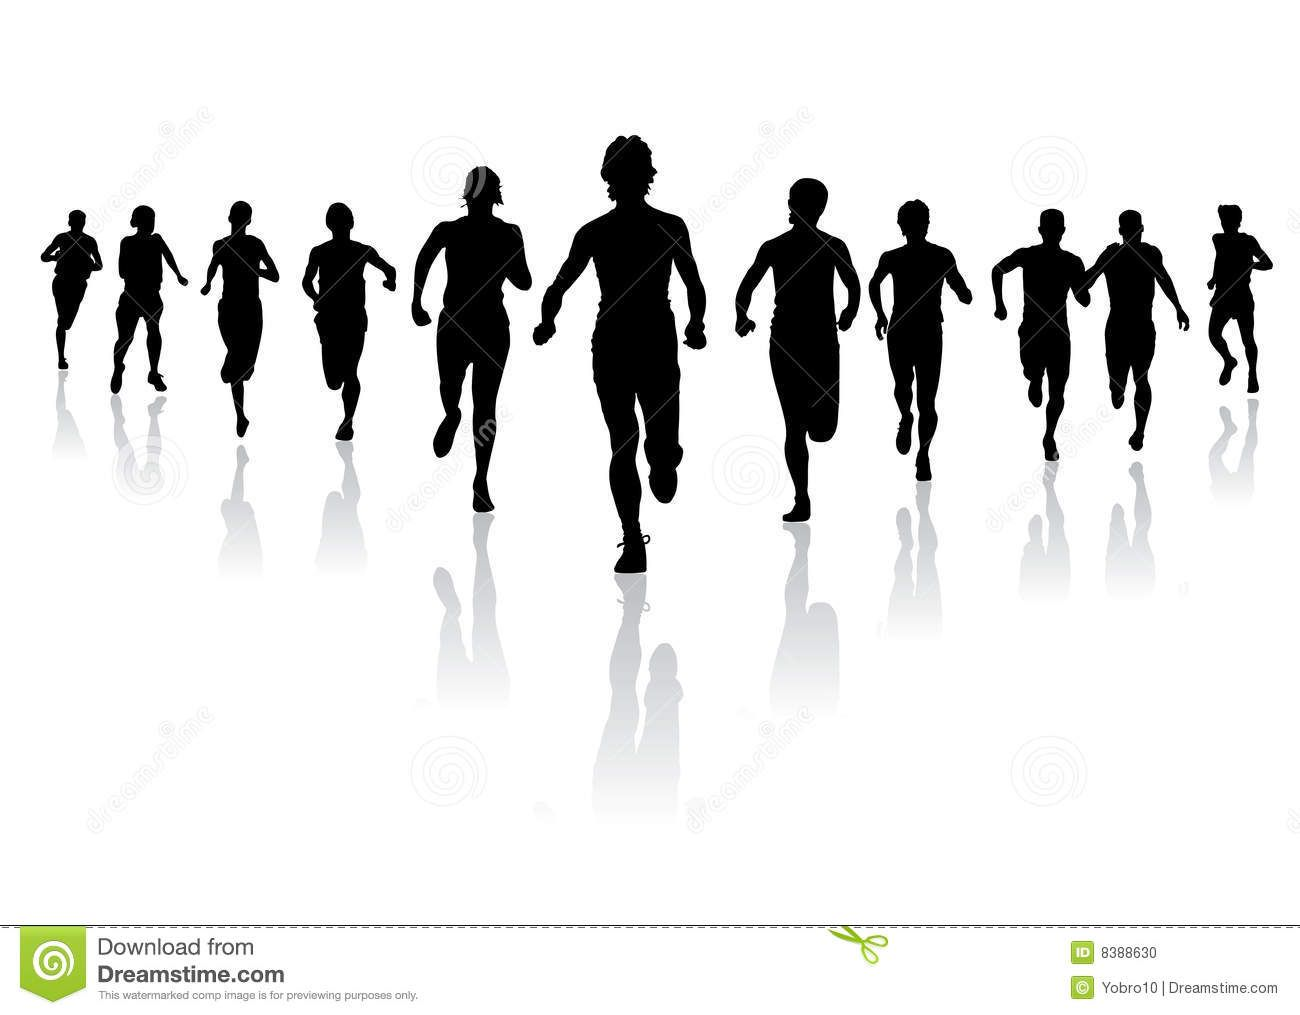 Clipart people running clipart library stock Clipart Of People Running | Free Clipart Images on clipartpig.com ... clipart library stock